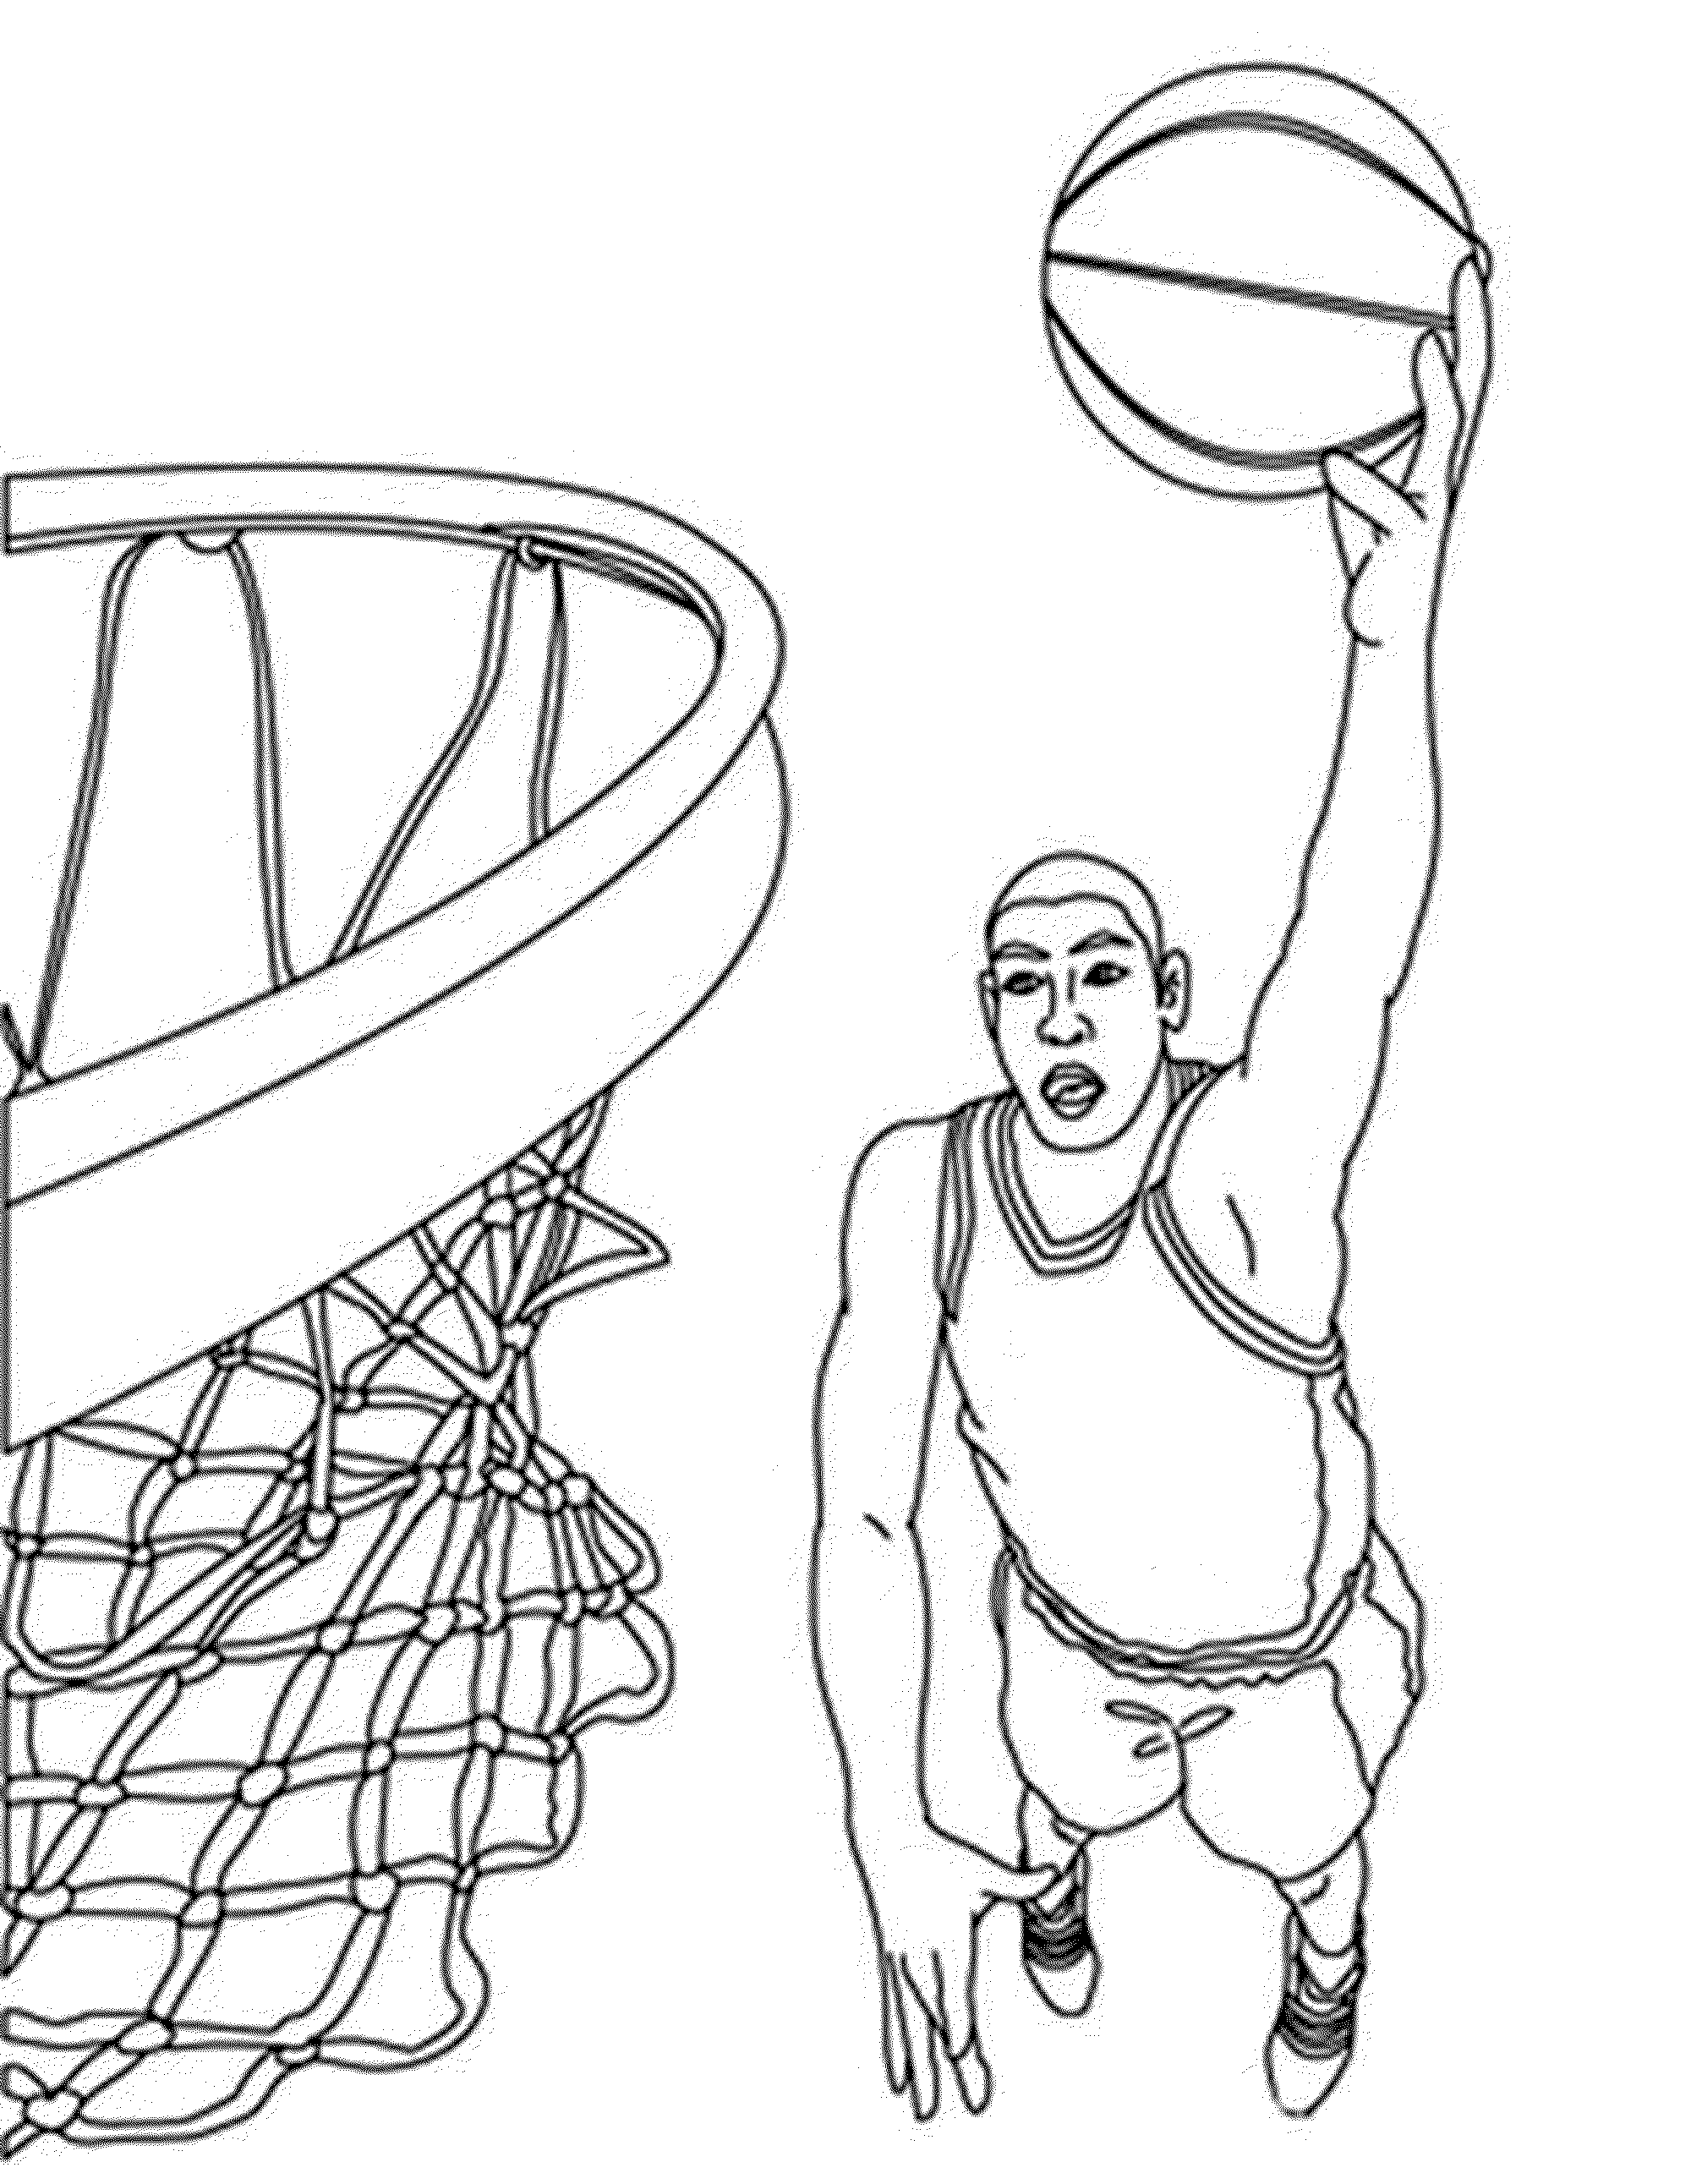 drawing of a basketball basketball by 0zyphr0 on deviantart of a drawing basketball